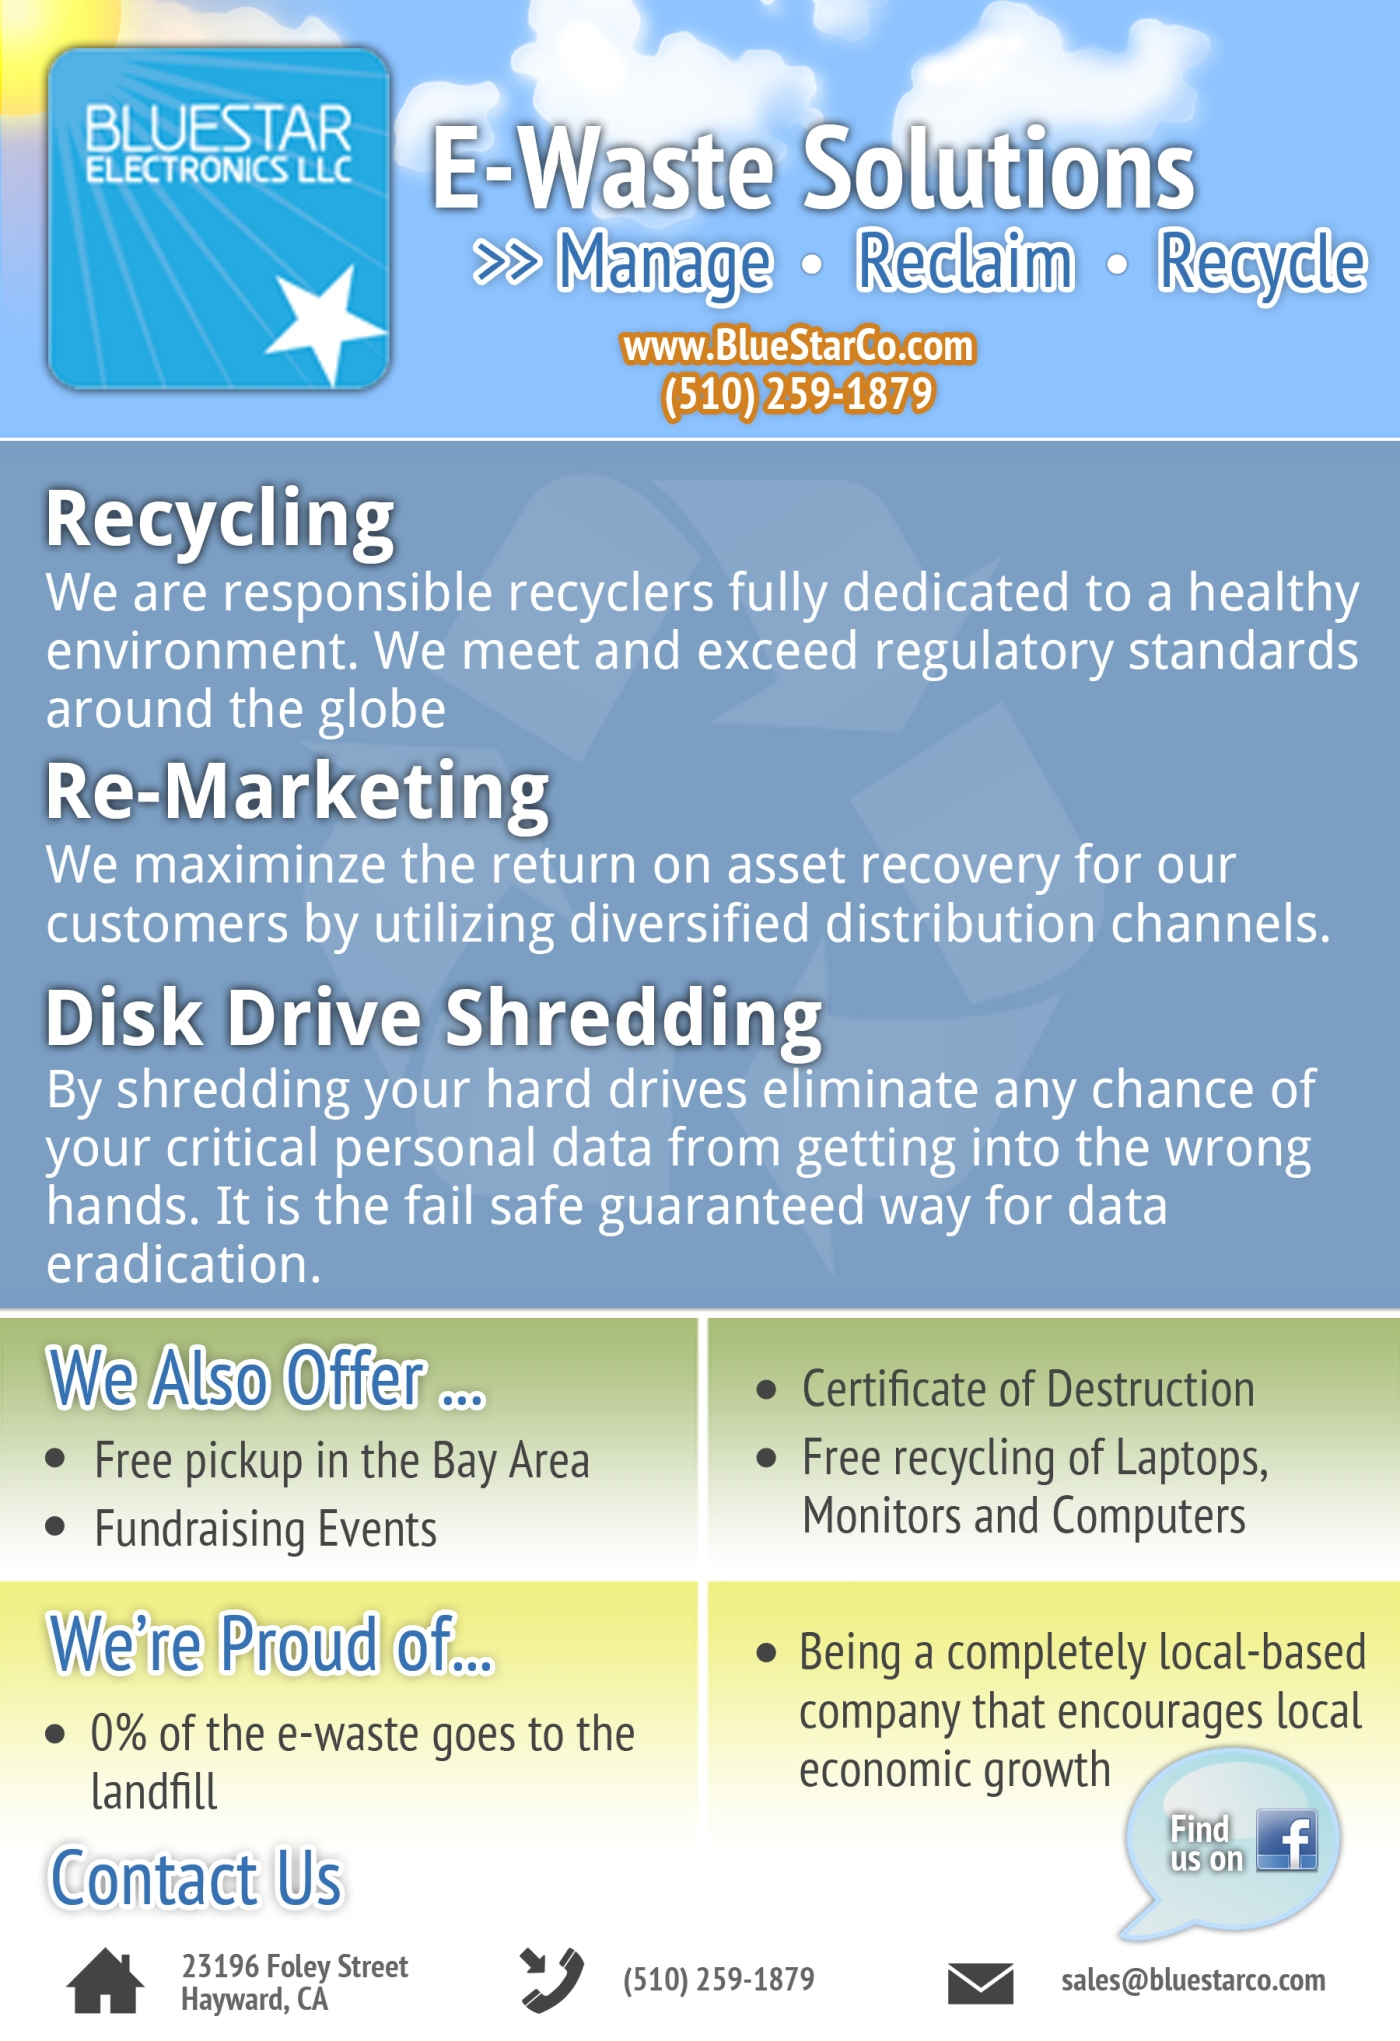 E Waste Solutions Manage Reclaim Recycle Blue Star Recycling Responsible Electronics